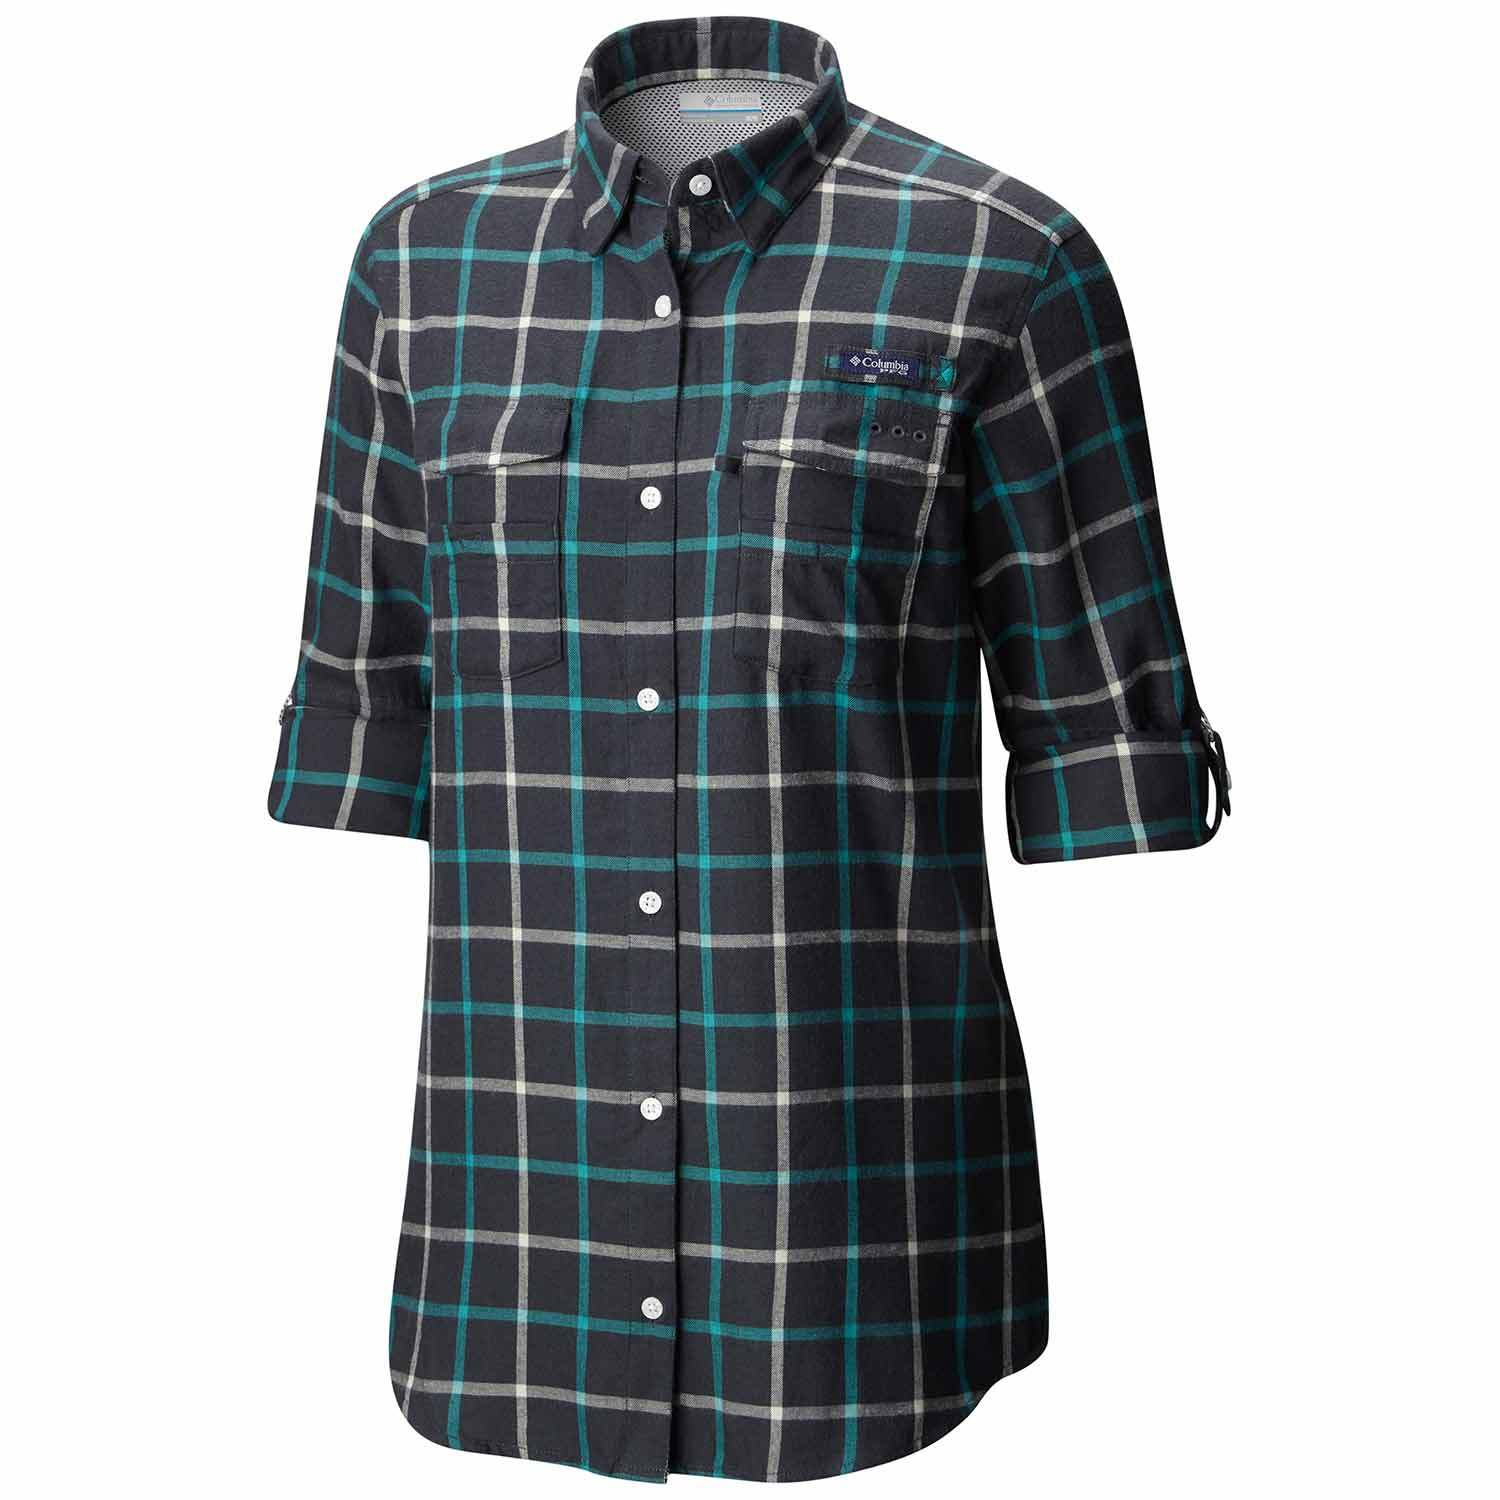 a6c4c0e8b9f Clearance Women's PFG Bonehead™ Flannel Shirt Enlarged view of picture,  opens dialog